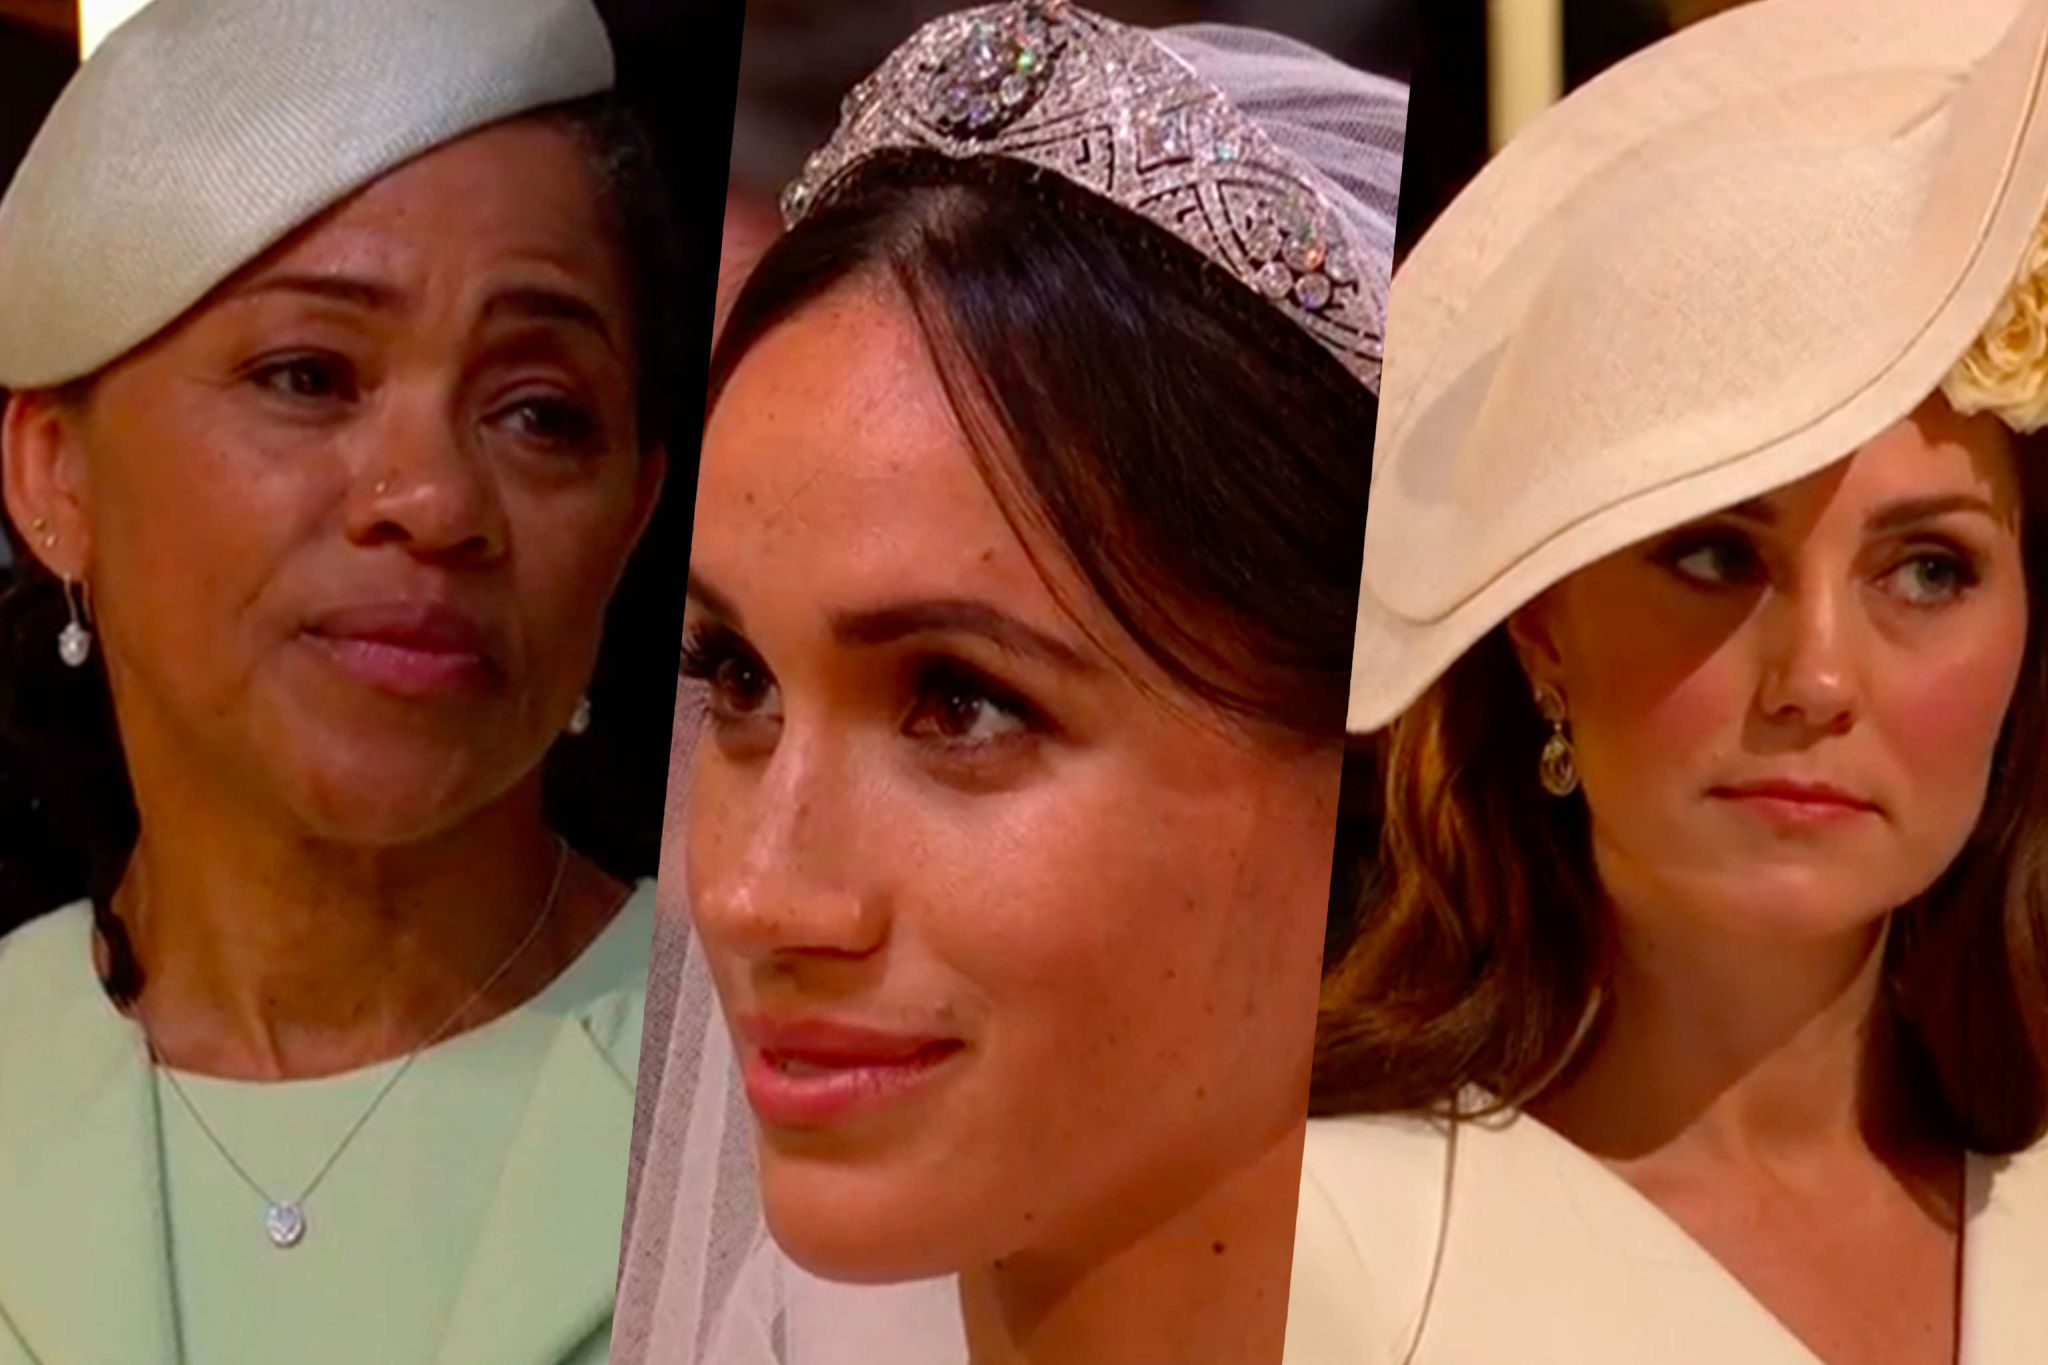 As seen on the Royal wedding 2018 - Harry Windsor and Meghan Markle